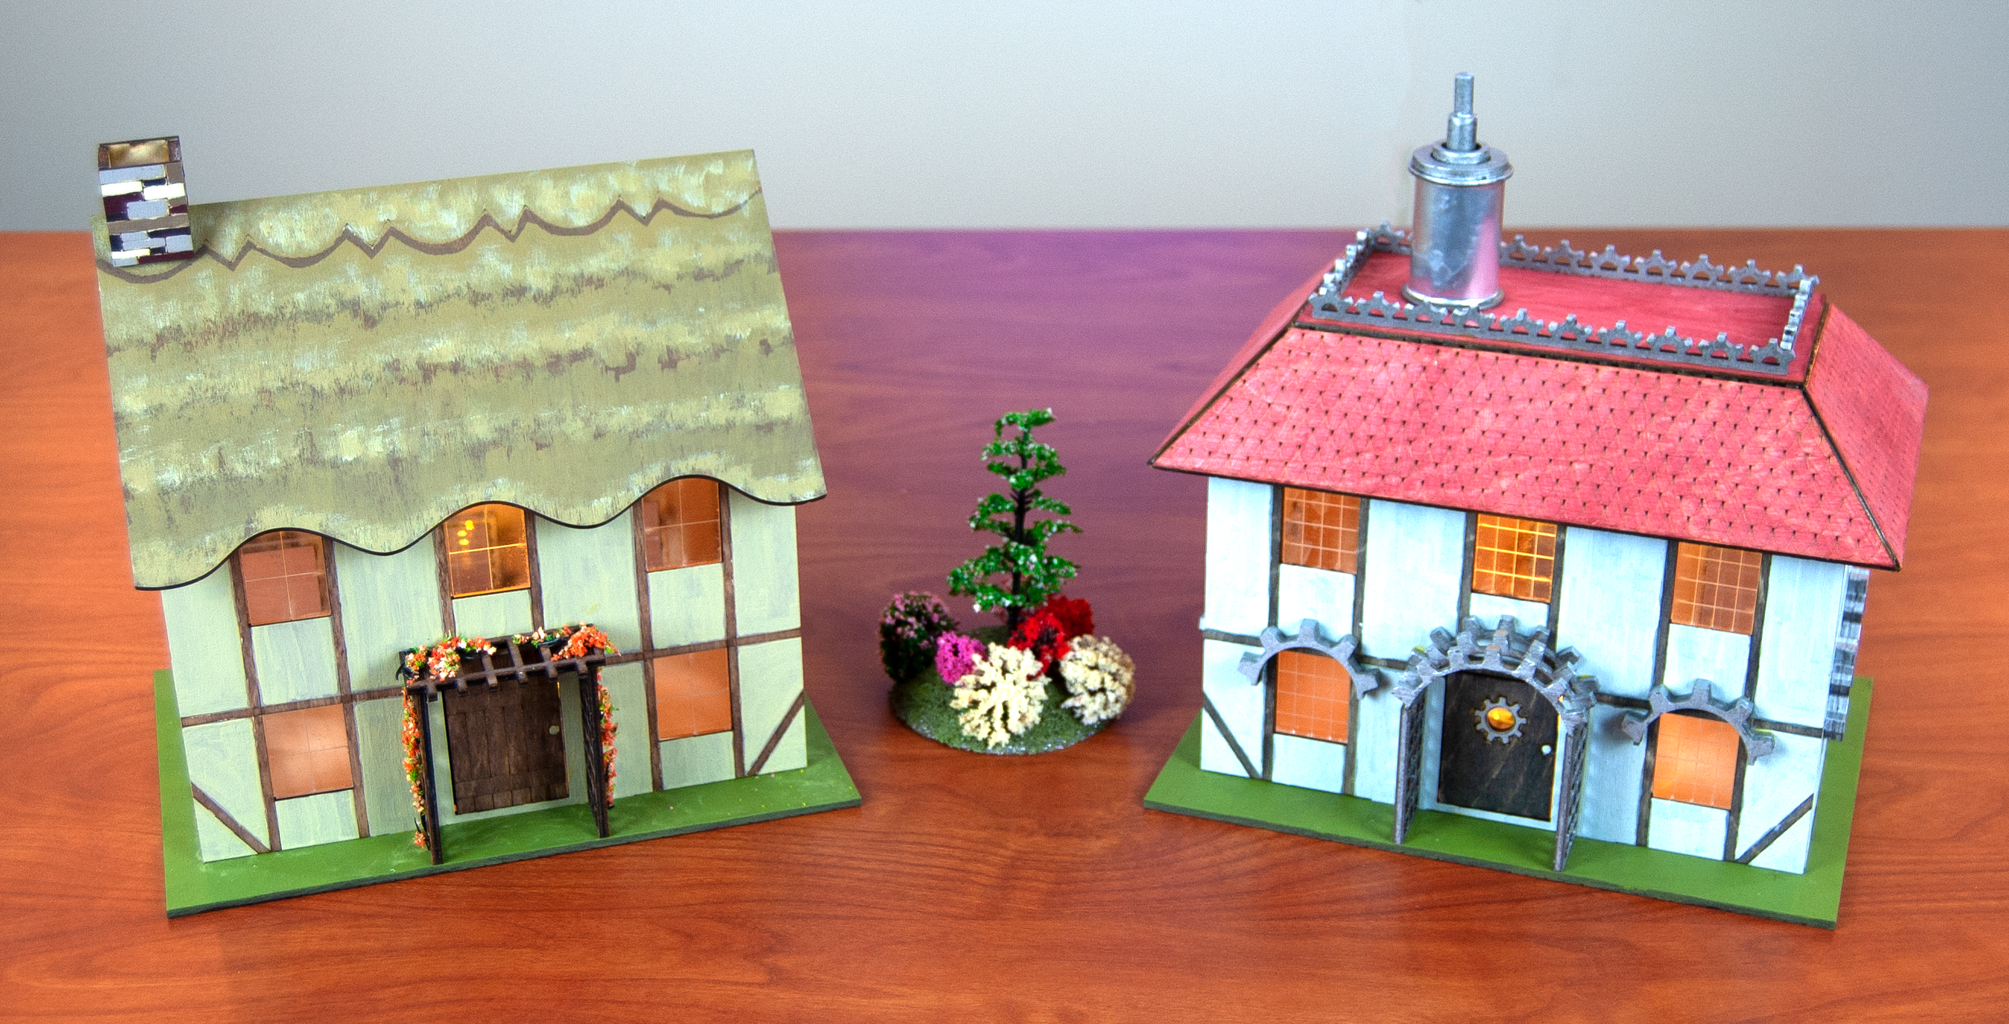 How to Design and Laser Cut a Steampunk Building and Country Cottage for Wargame Terrain